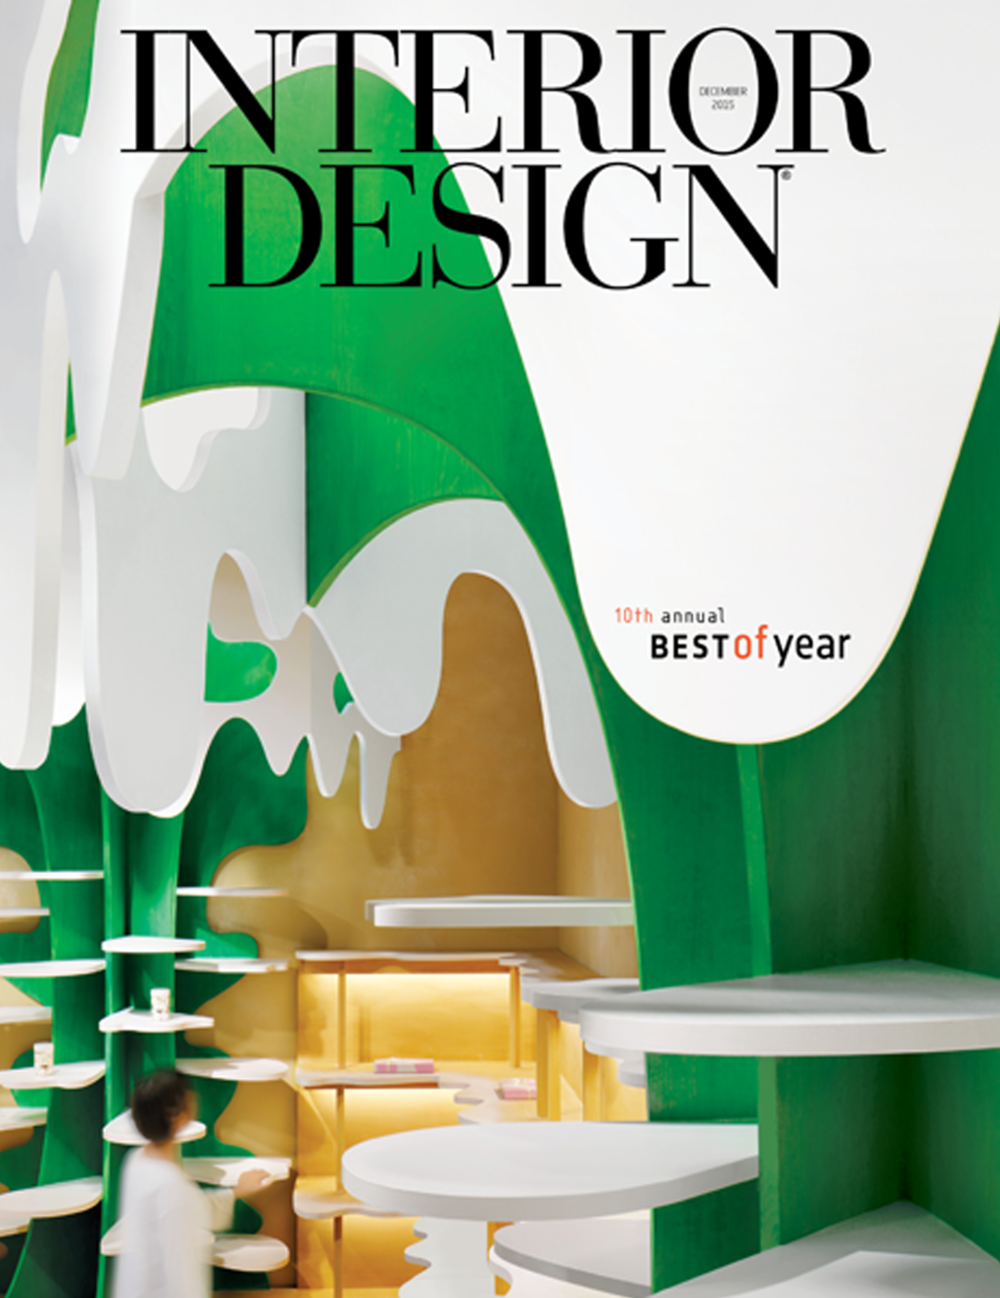 Interior Design Magazine-December 2015-COVER.png